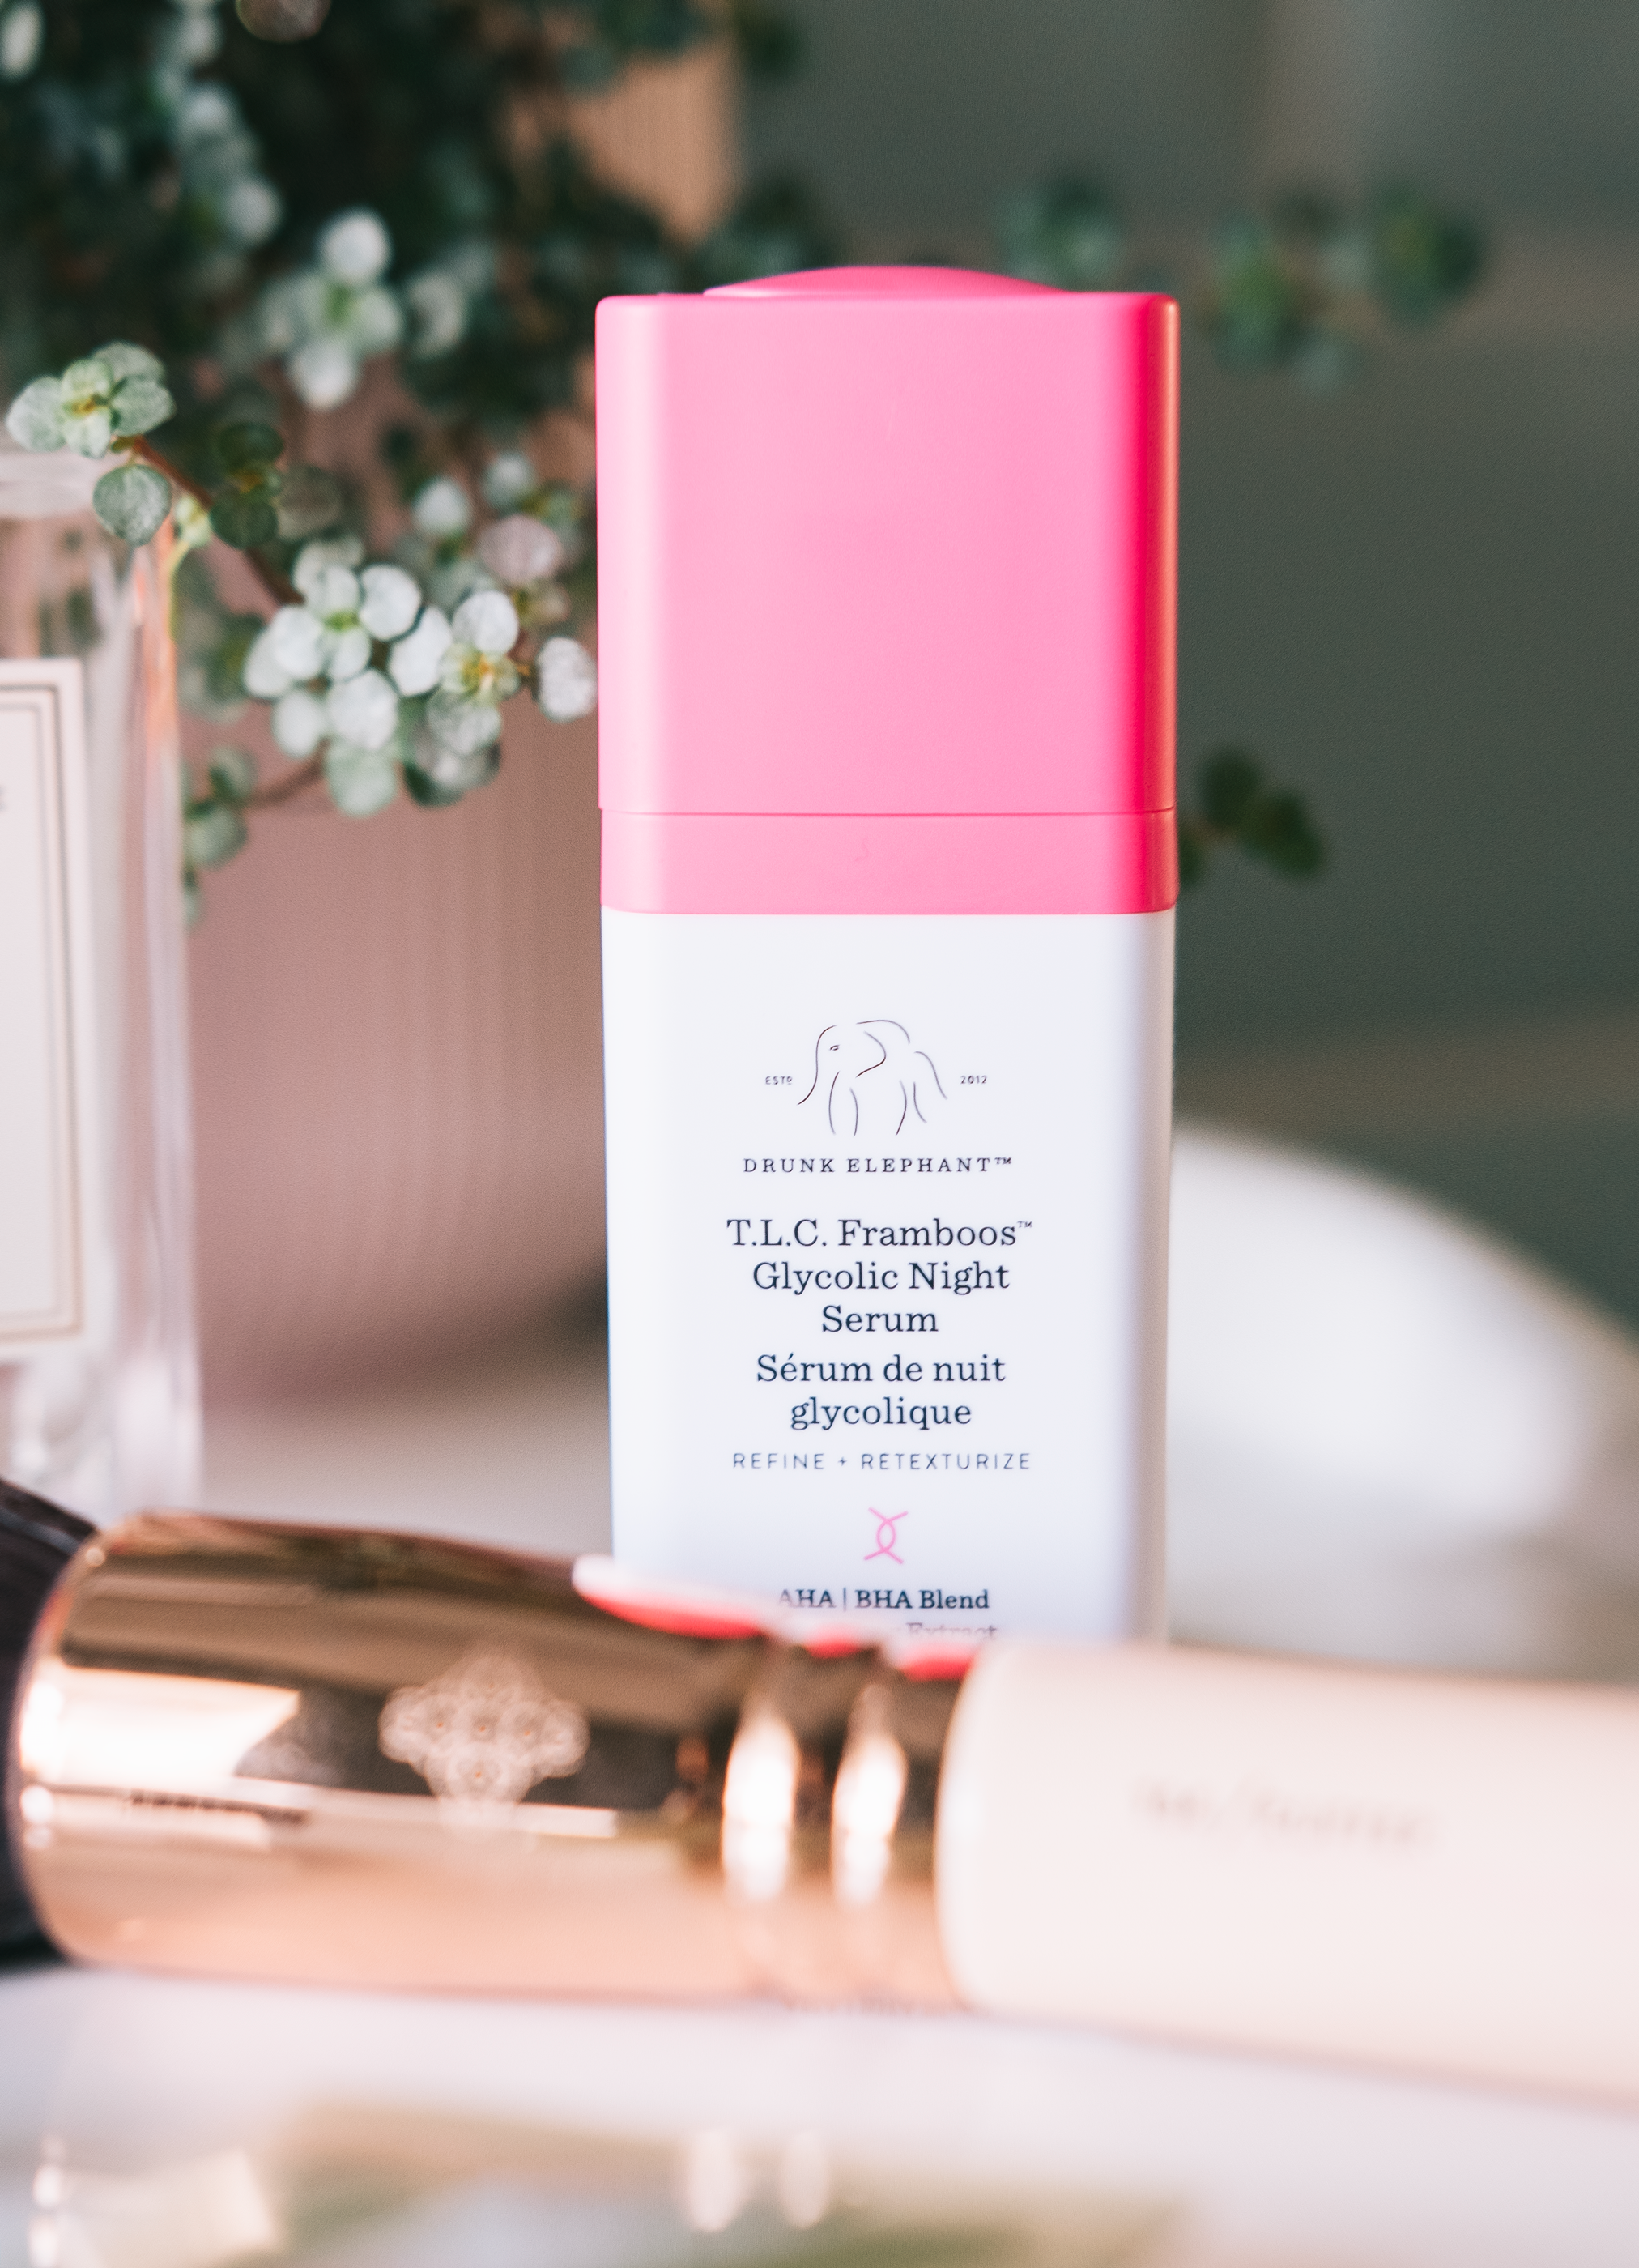 drunk elephant t.l.c framboos glycolic night serum (gifted) - This is the second Drunk Elephant serum that I've been giving a go and if your skin agrees with glycolic acid then you're going to love this. Even though I've been a user and lover of this particular acid for a long time it took my skin a little while to get used to how potent this serum is as it's not just glycolic acid and it contains a beautiful blend of AHA and BHA's. So if you're only just getting into this type of skincare I would go easy when using this as it's strong and of course, use SPF in the AM. As this is so strong it means that the results are noticeable quickly and I have to say the clarity of my skin at the moment is great as the blend of acids scrubs away at the dead skin cells to reveal a brighter complexion. And I think for the first time I've not had my usual monthly hormonal spot which has to be down to the skincare that I'm using over any other changes.